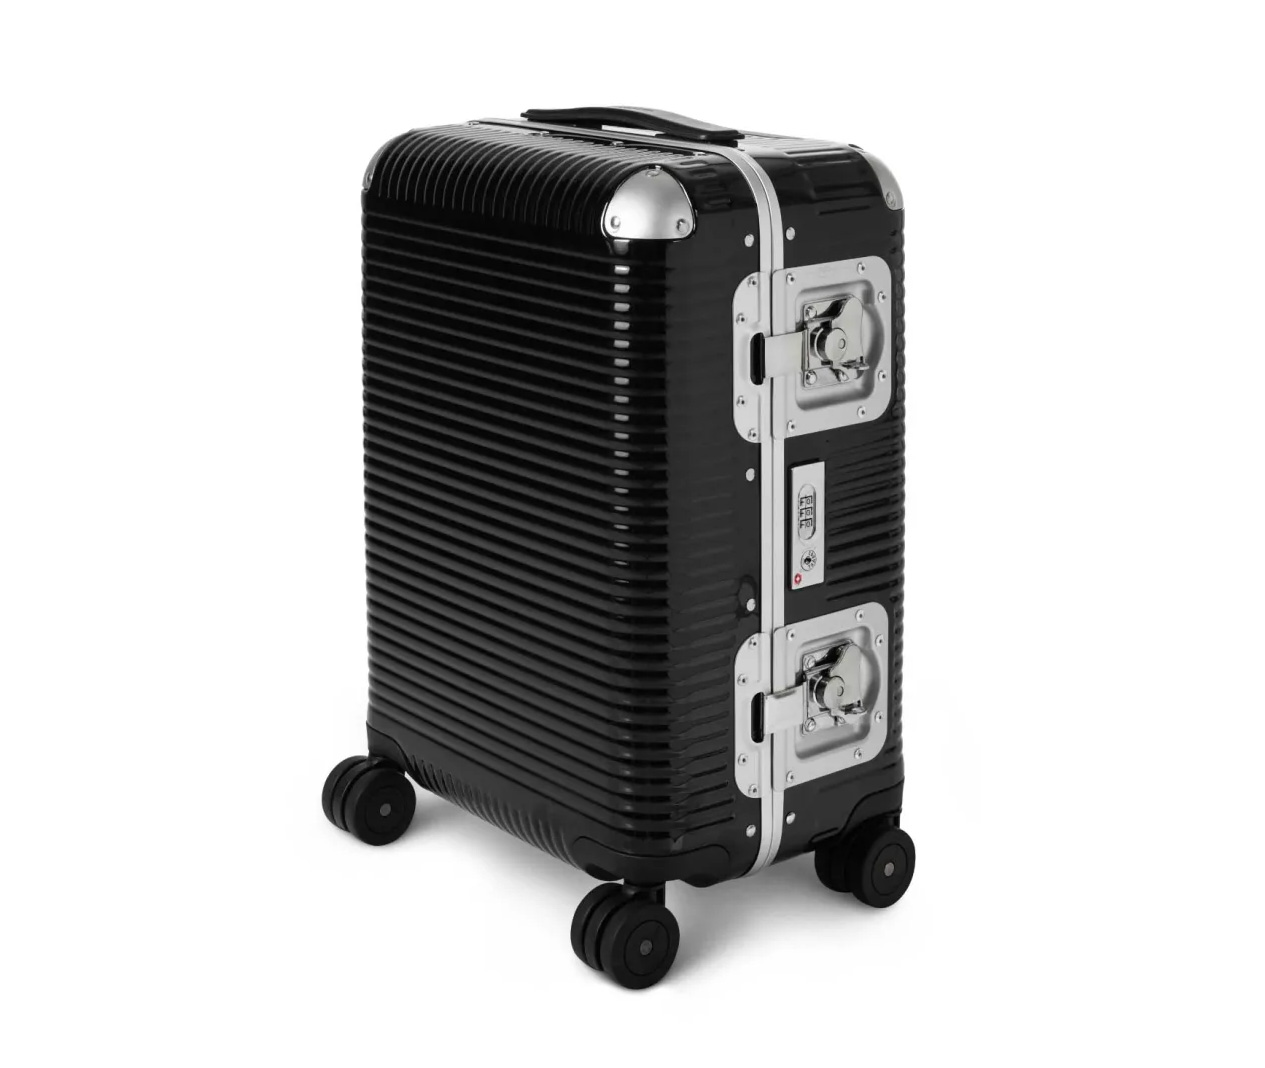 Italian Luggage Maker FPM Introduces Bank Light Collection at werd.com